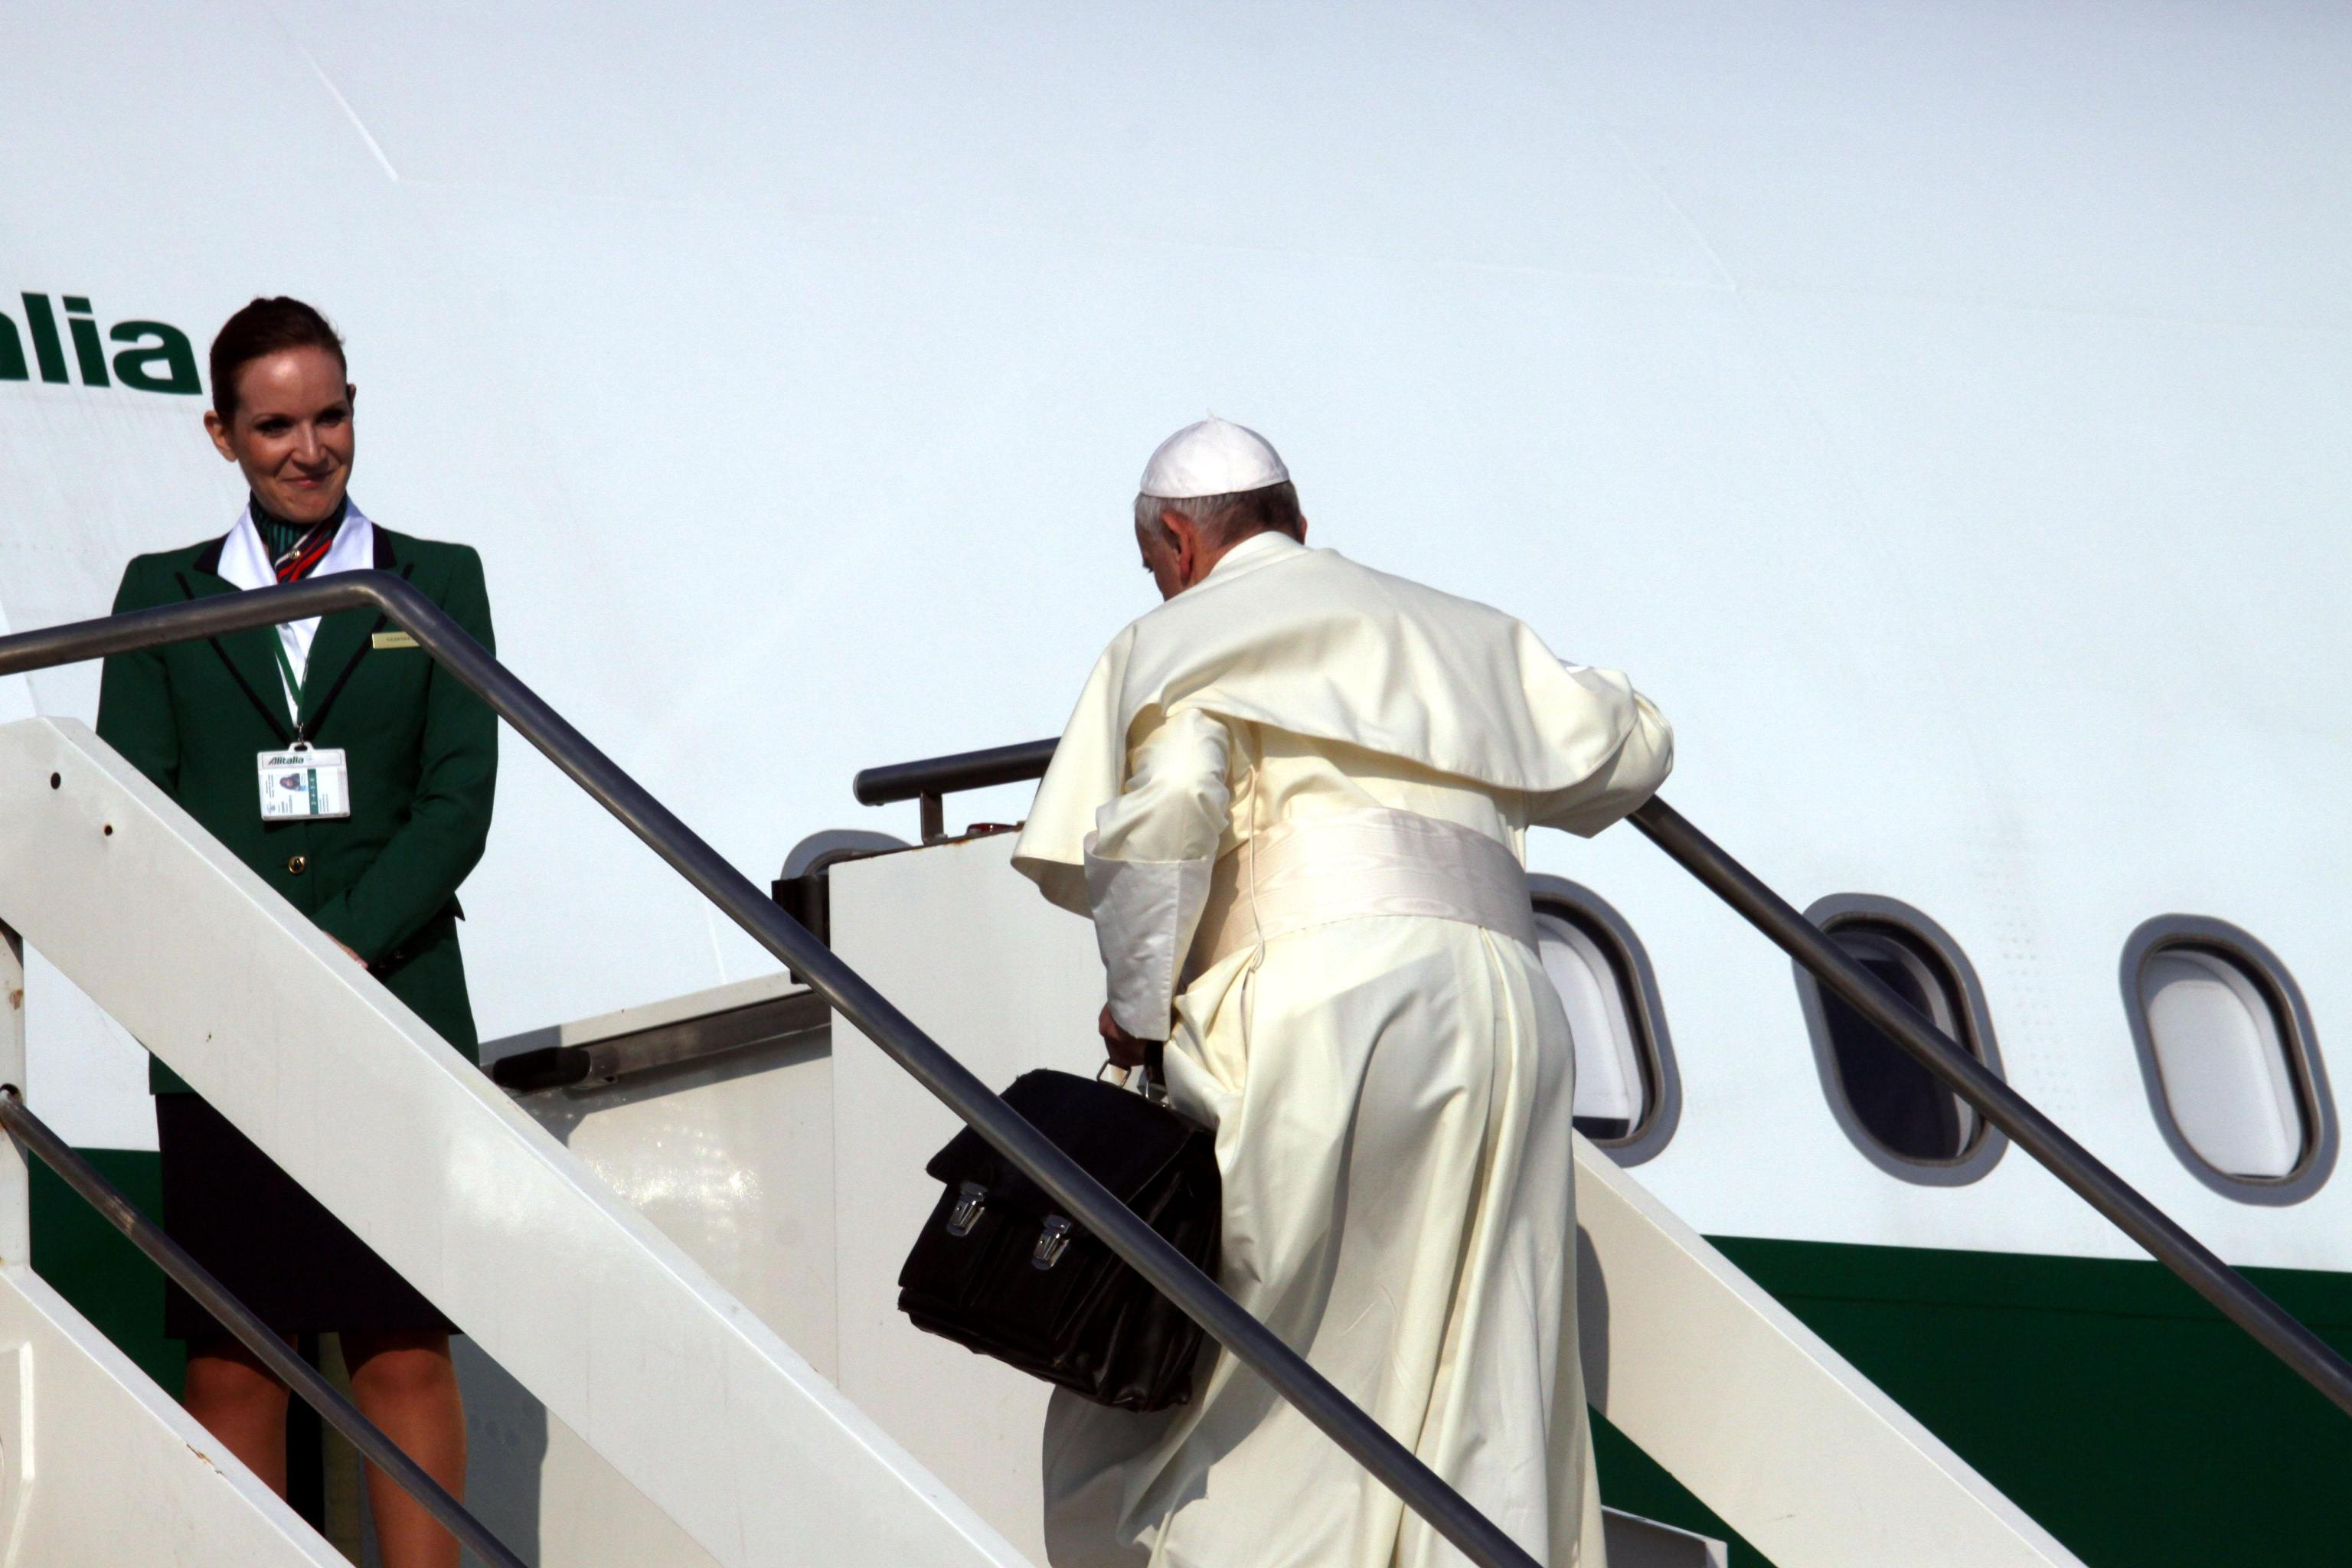 Pope Francis plane sets off for Brazil